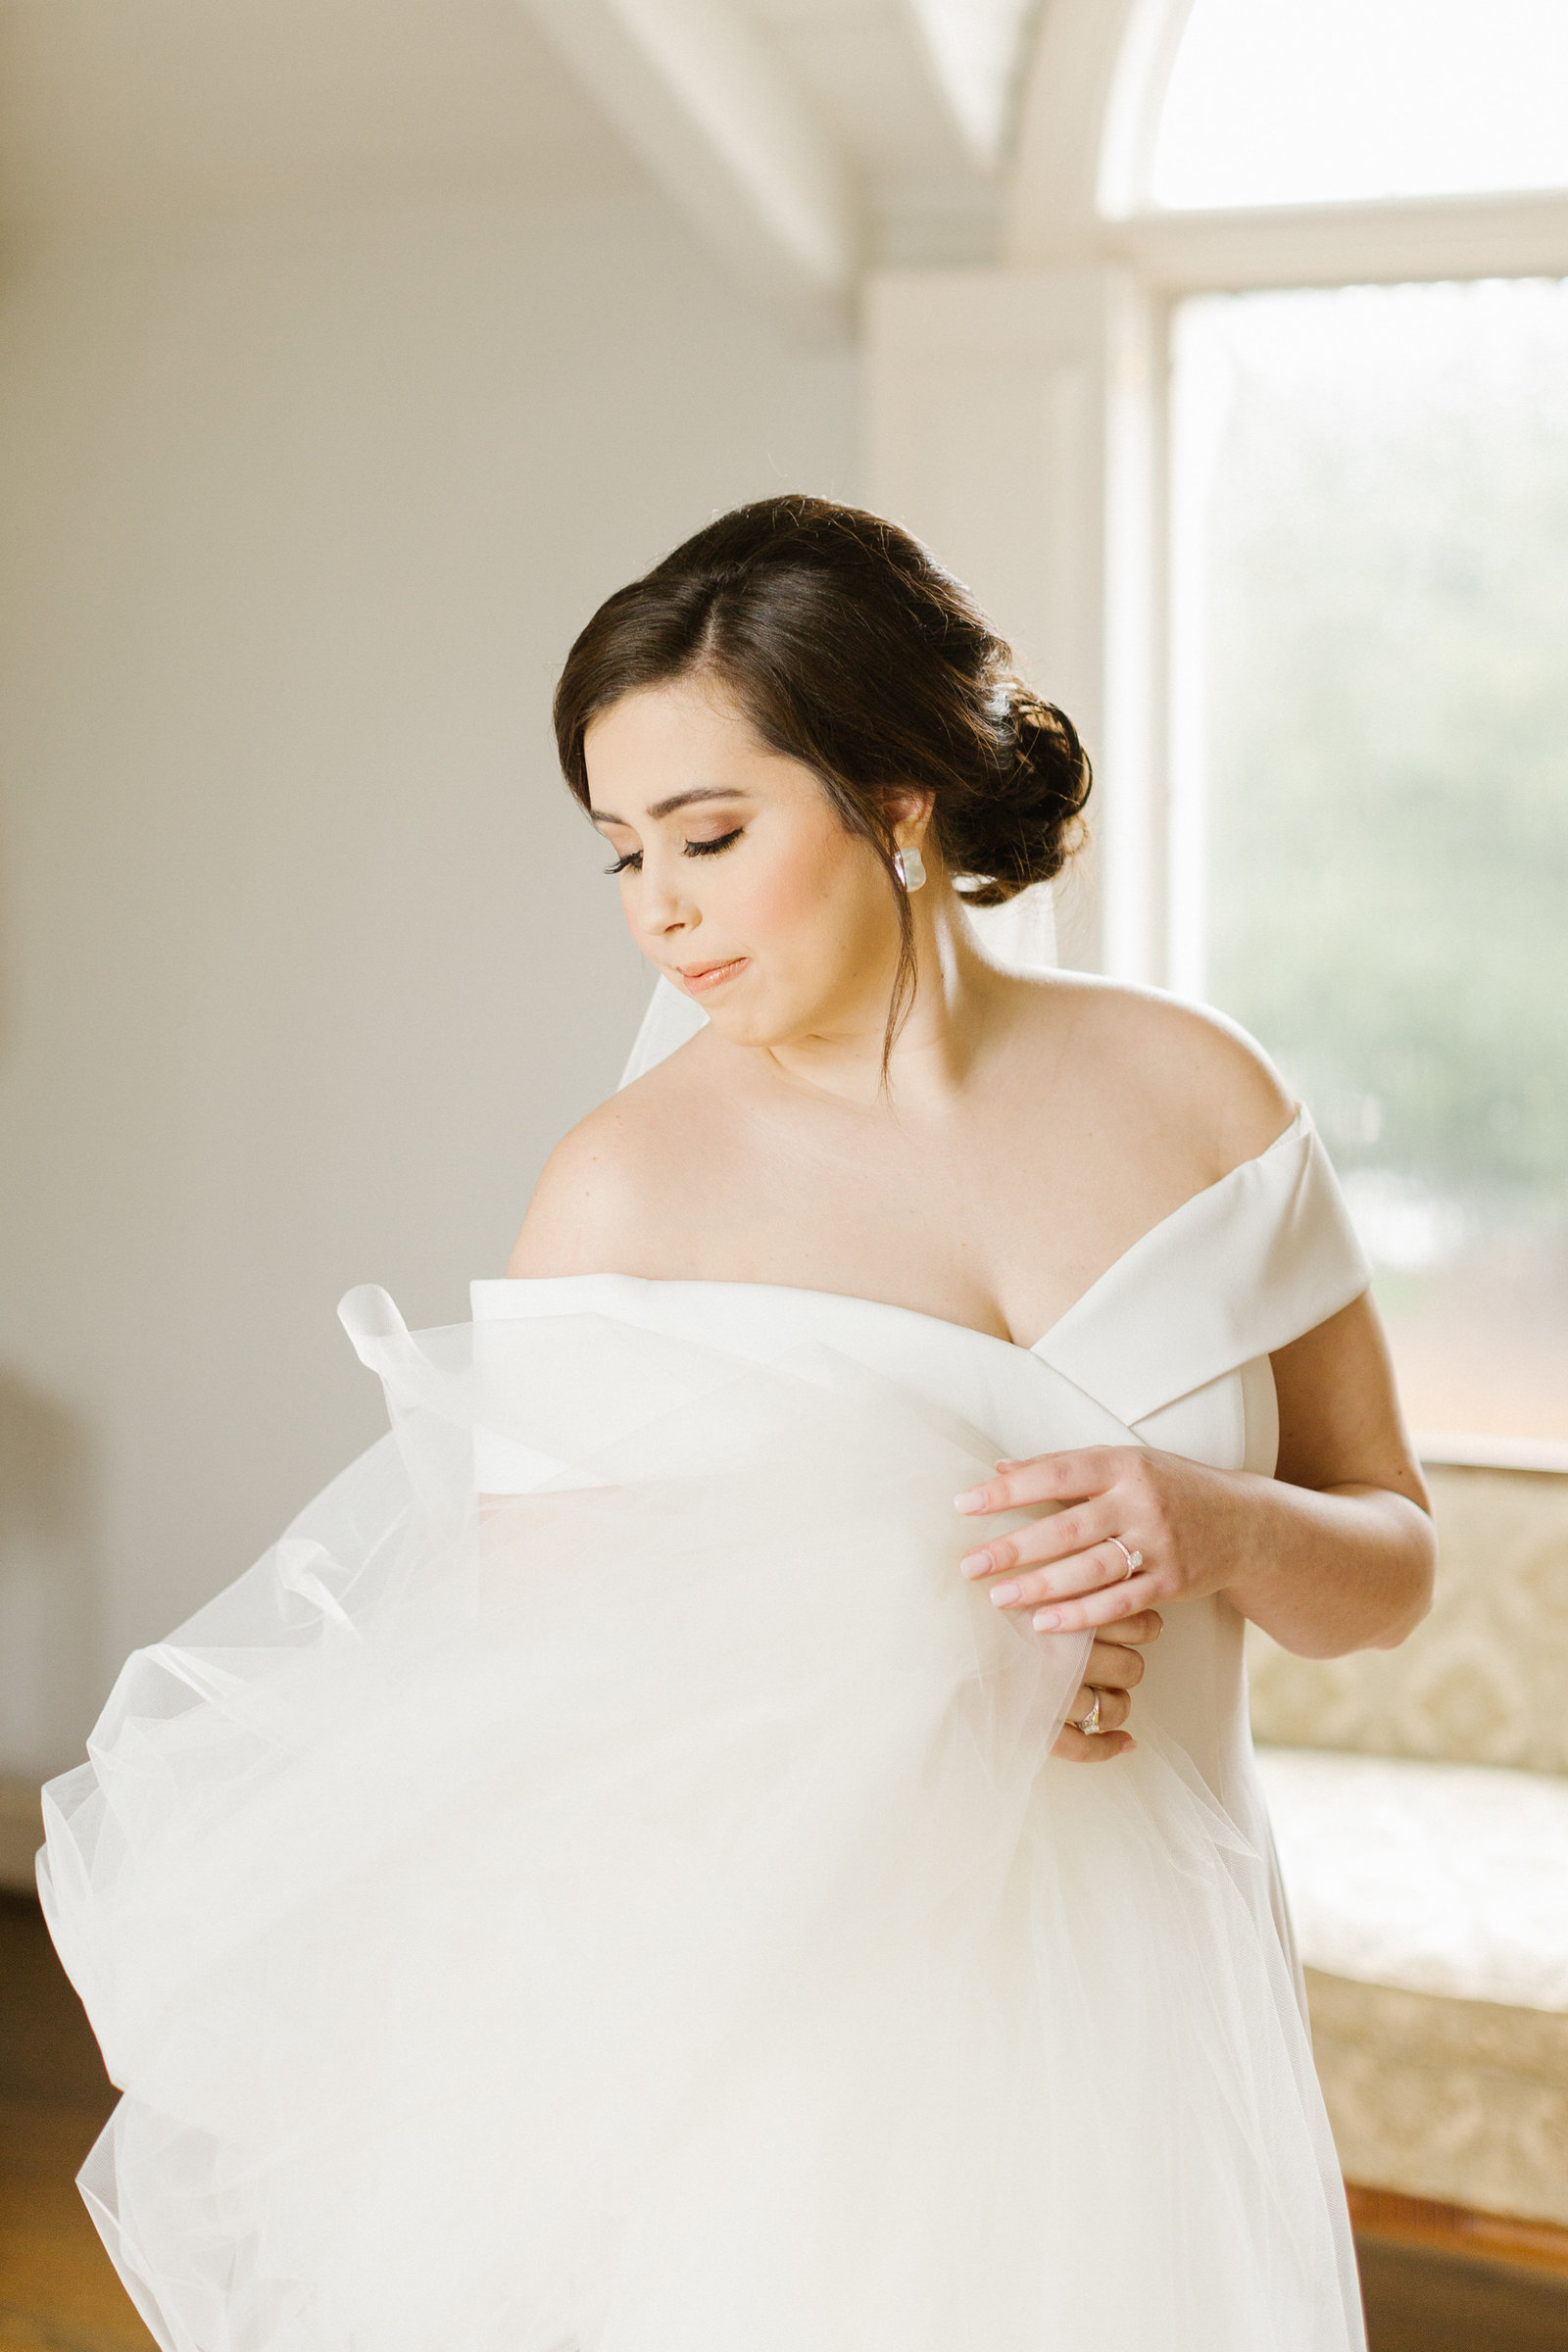 01_Bride-Getting-Ready_180